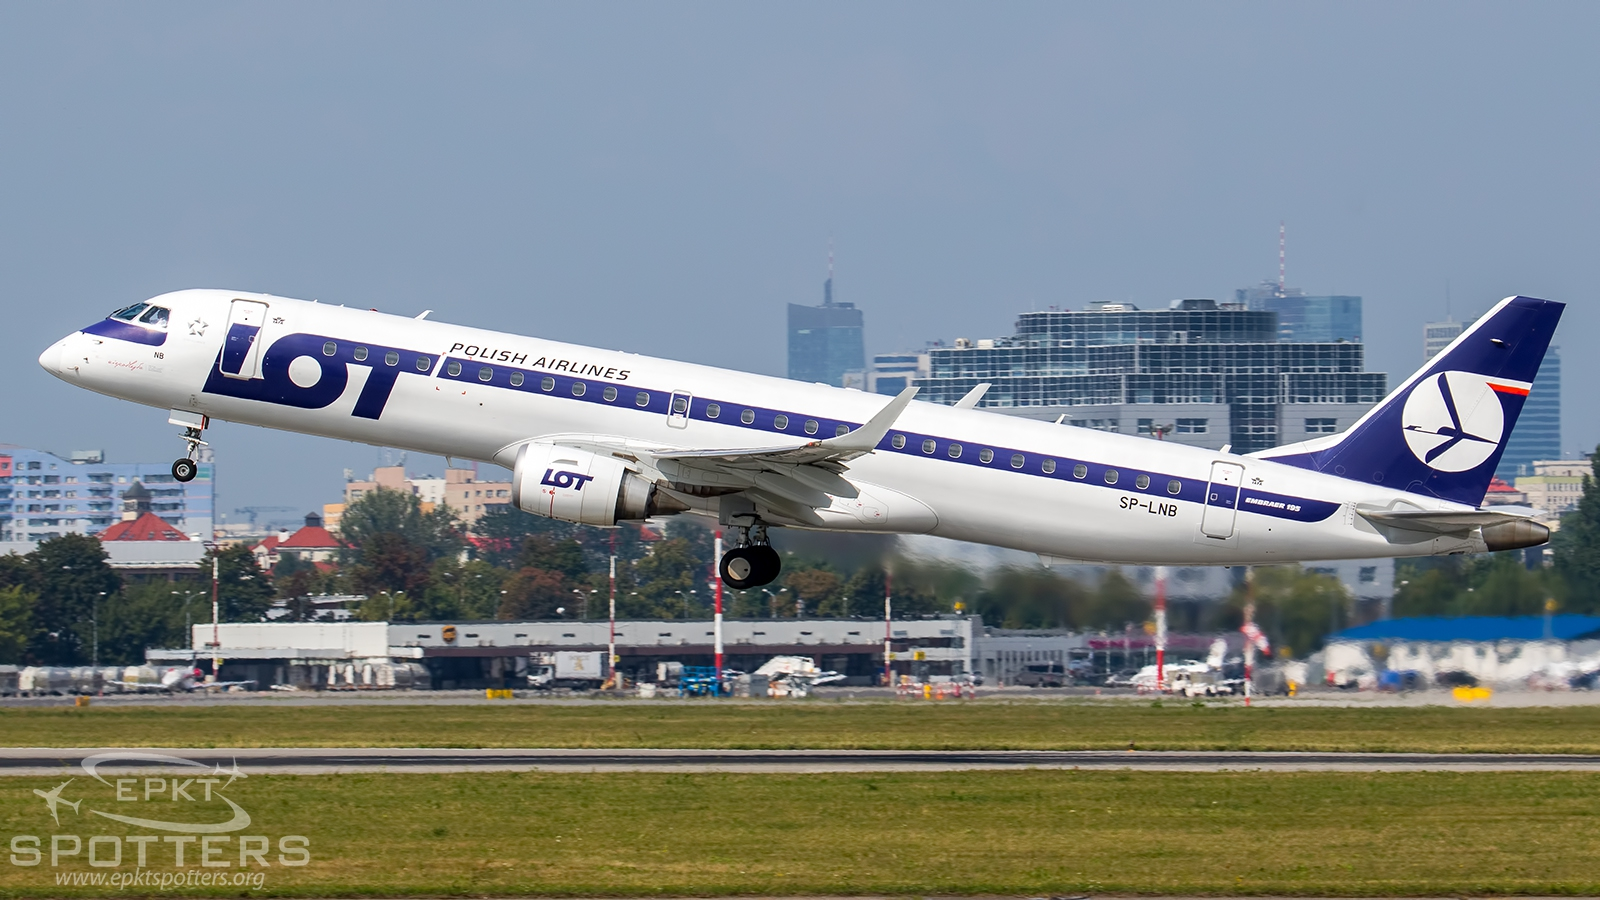 SP-LNB - Embraer 190 -200LR (LOT Polish Airlines) / Chopin / Okecie - Warsaw Poland [EPWA/WAW]